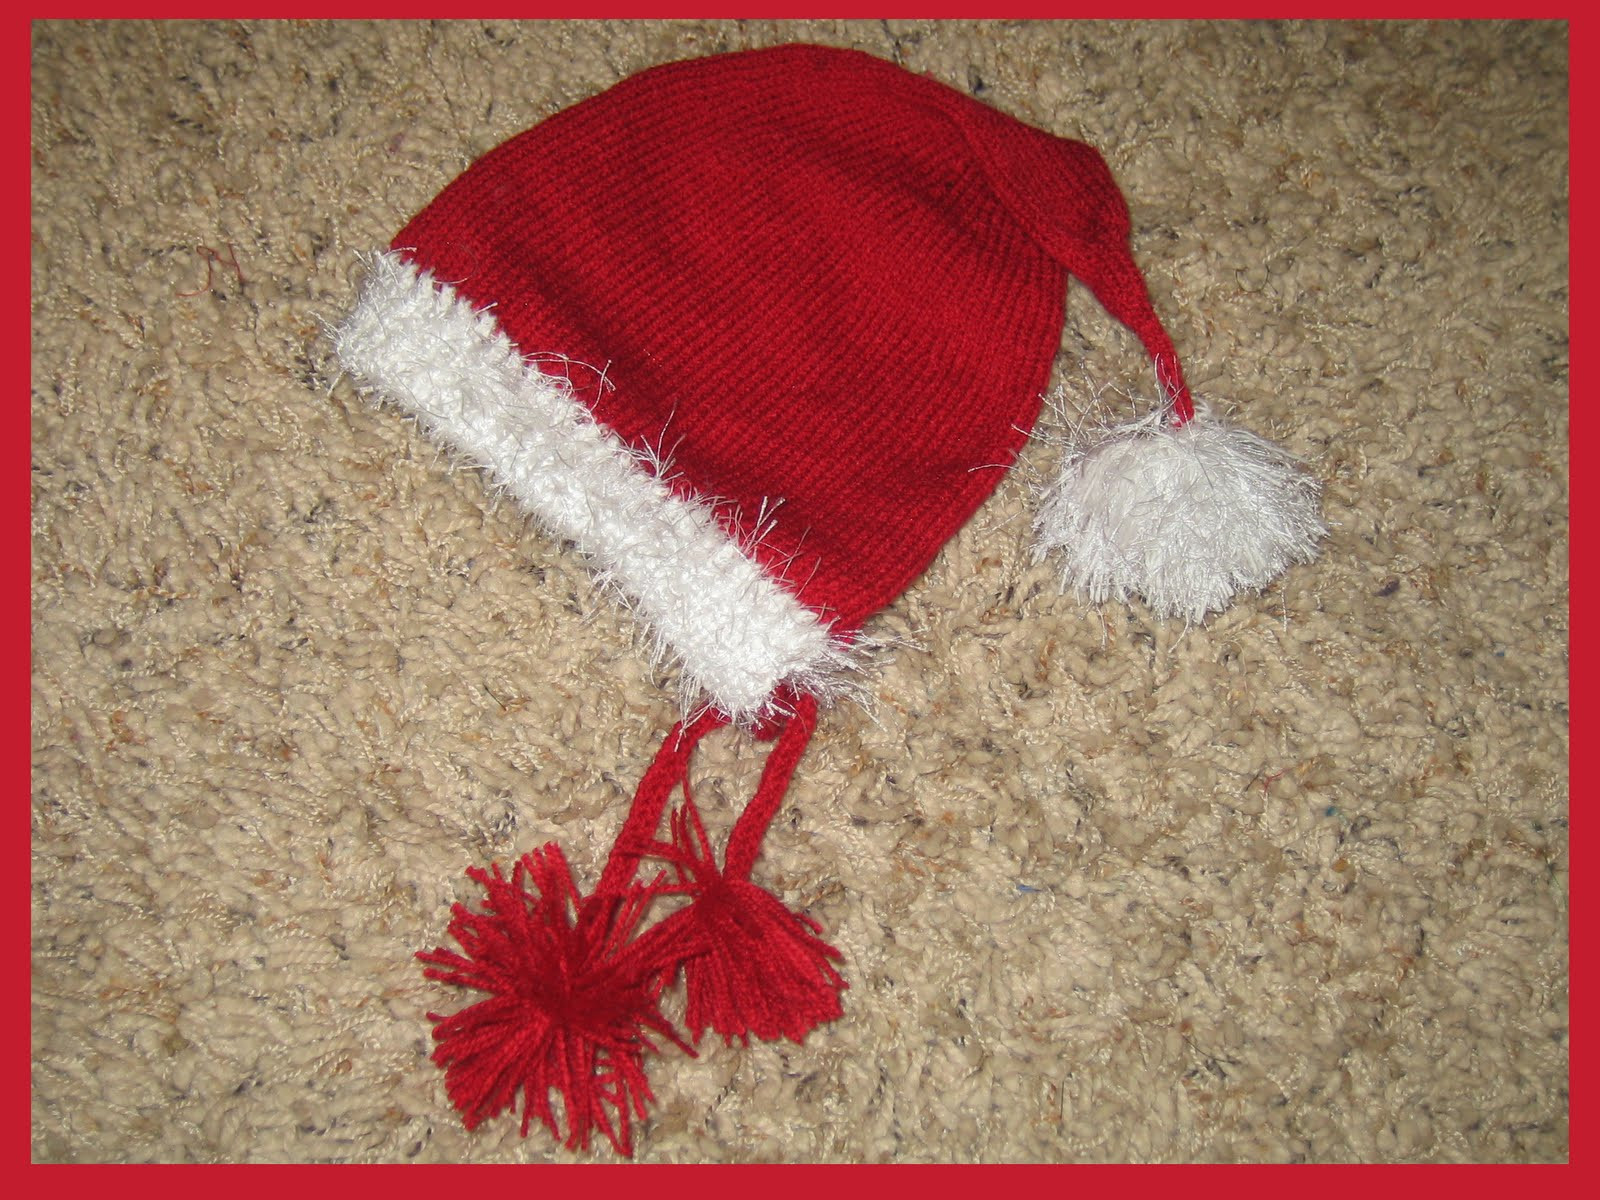 Inspirational Marzipanknits Free Machine Knit Pattern for A Baby Santa Hat Santa Hat Pattern Of Unique Musings Of A Knit A Holic From Wales Knitting Pattern Santa Hat Pattern